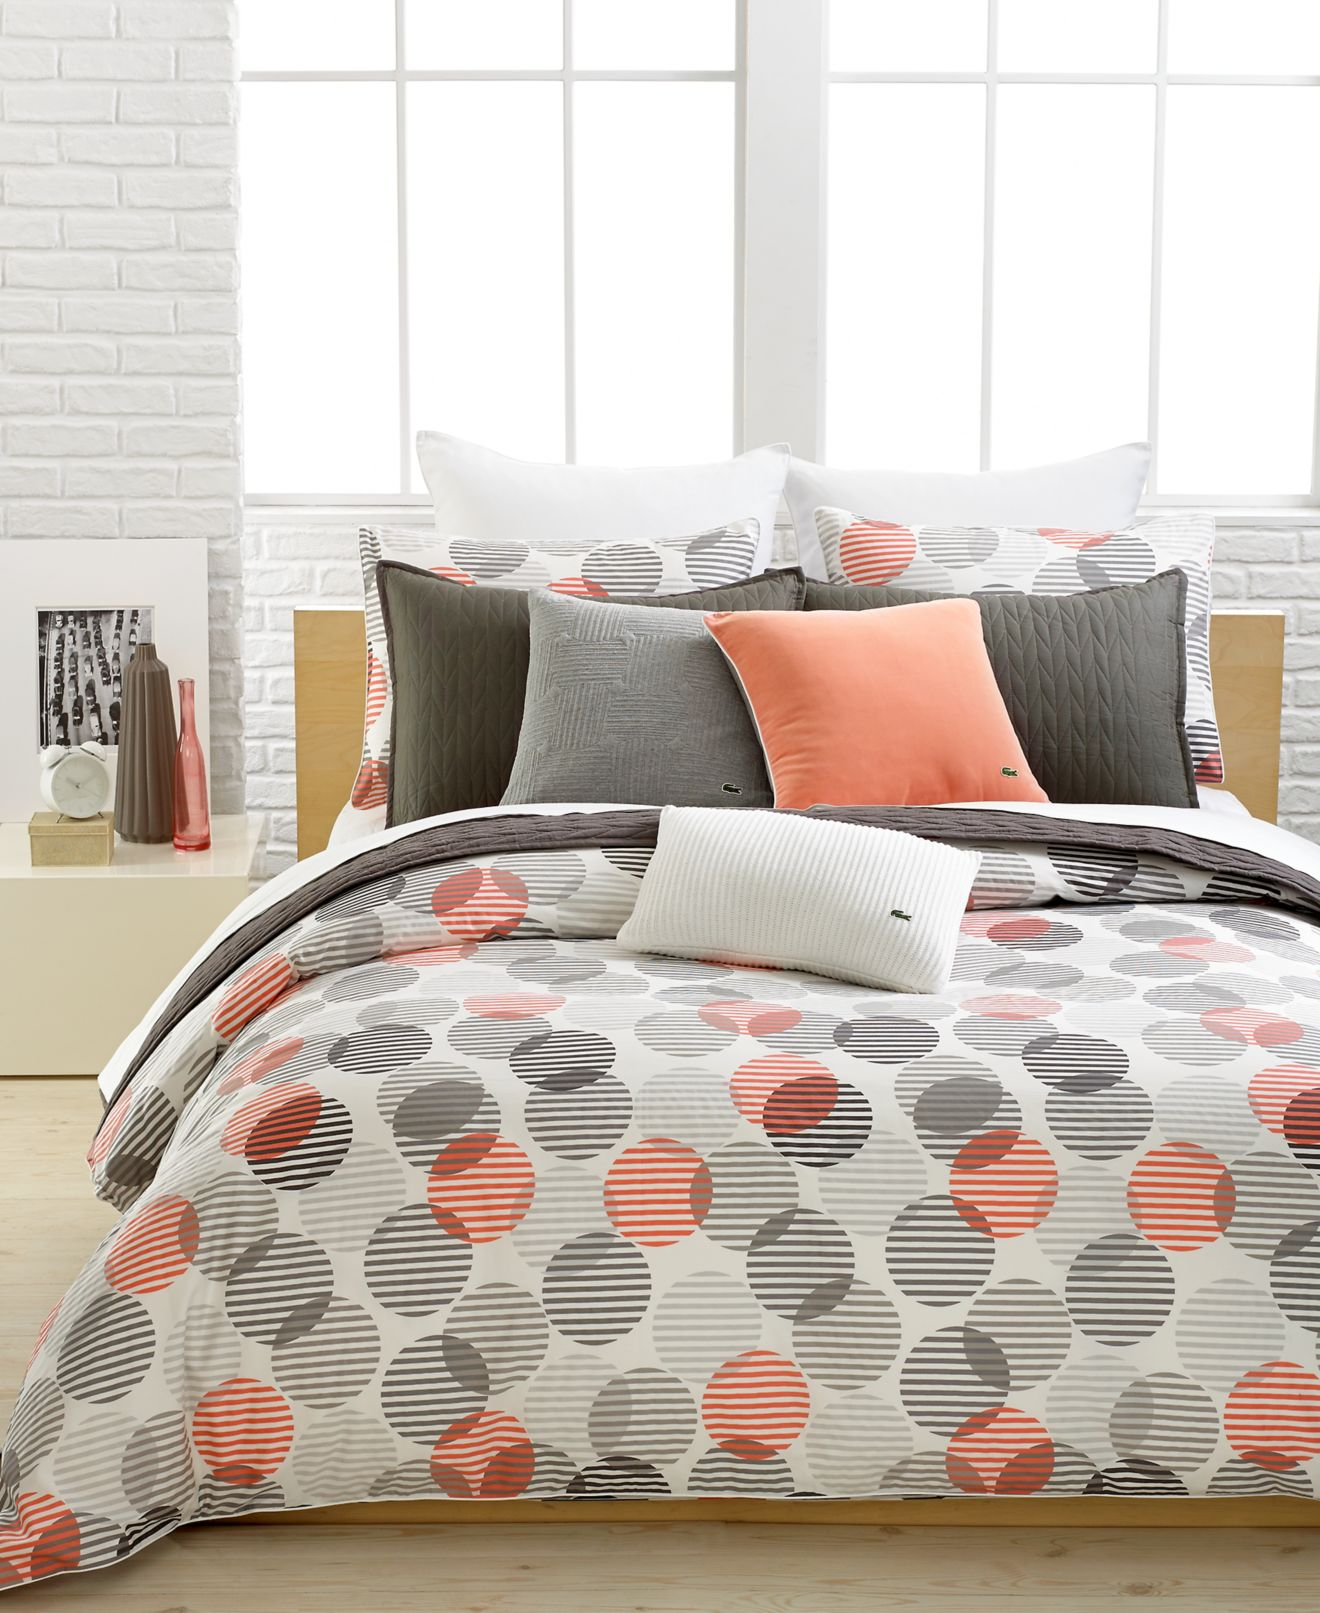 bedding collections lacoste bedding, towels, and sheets - macy's